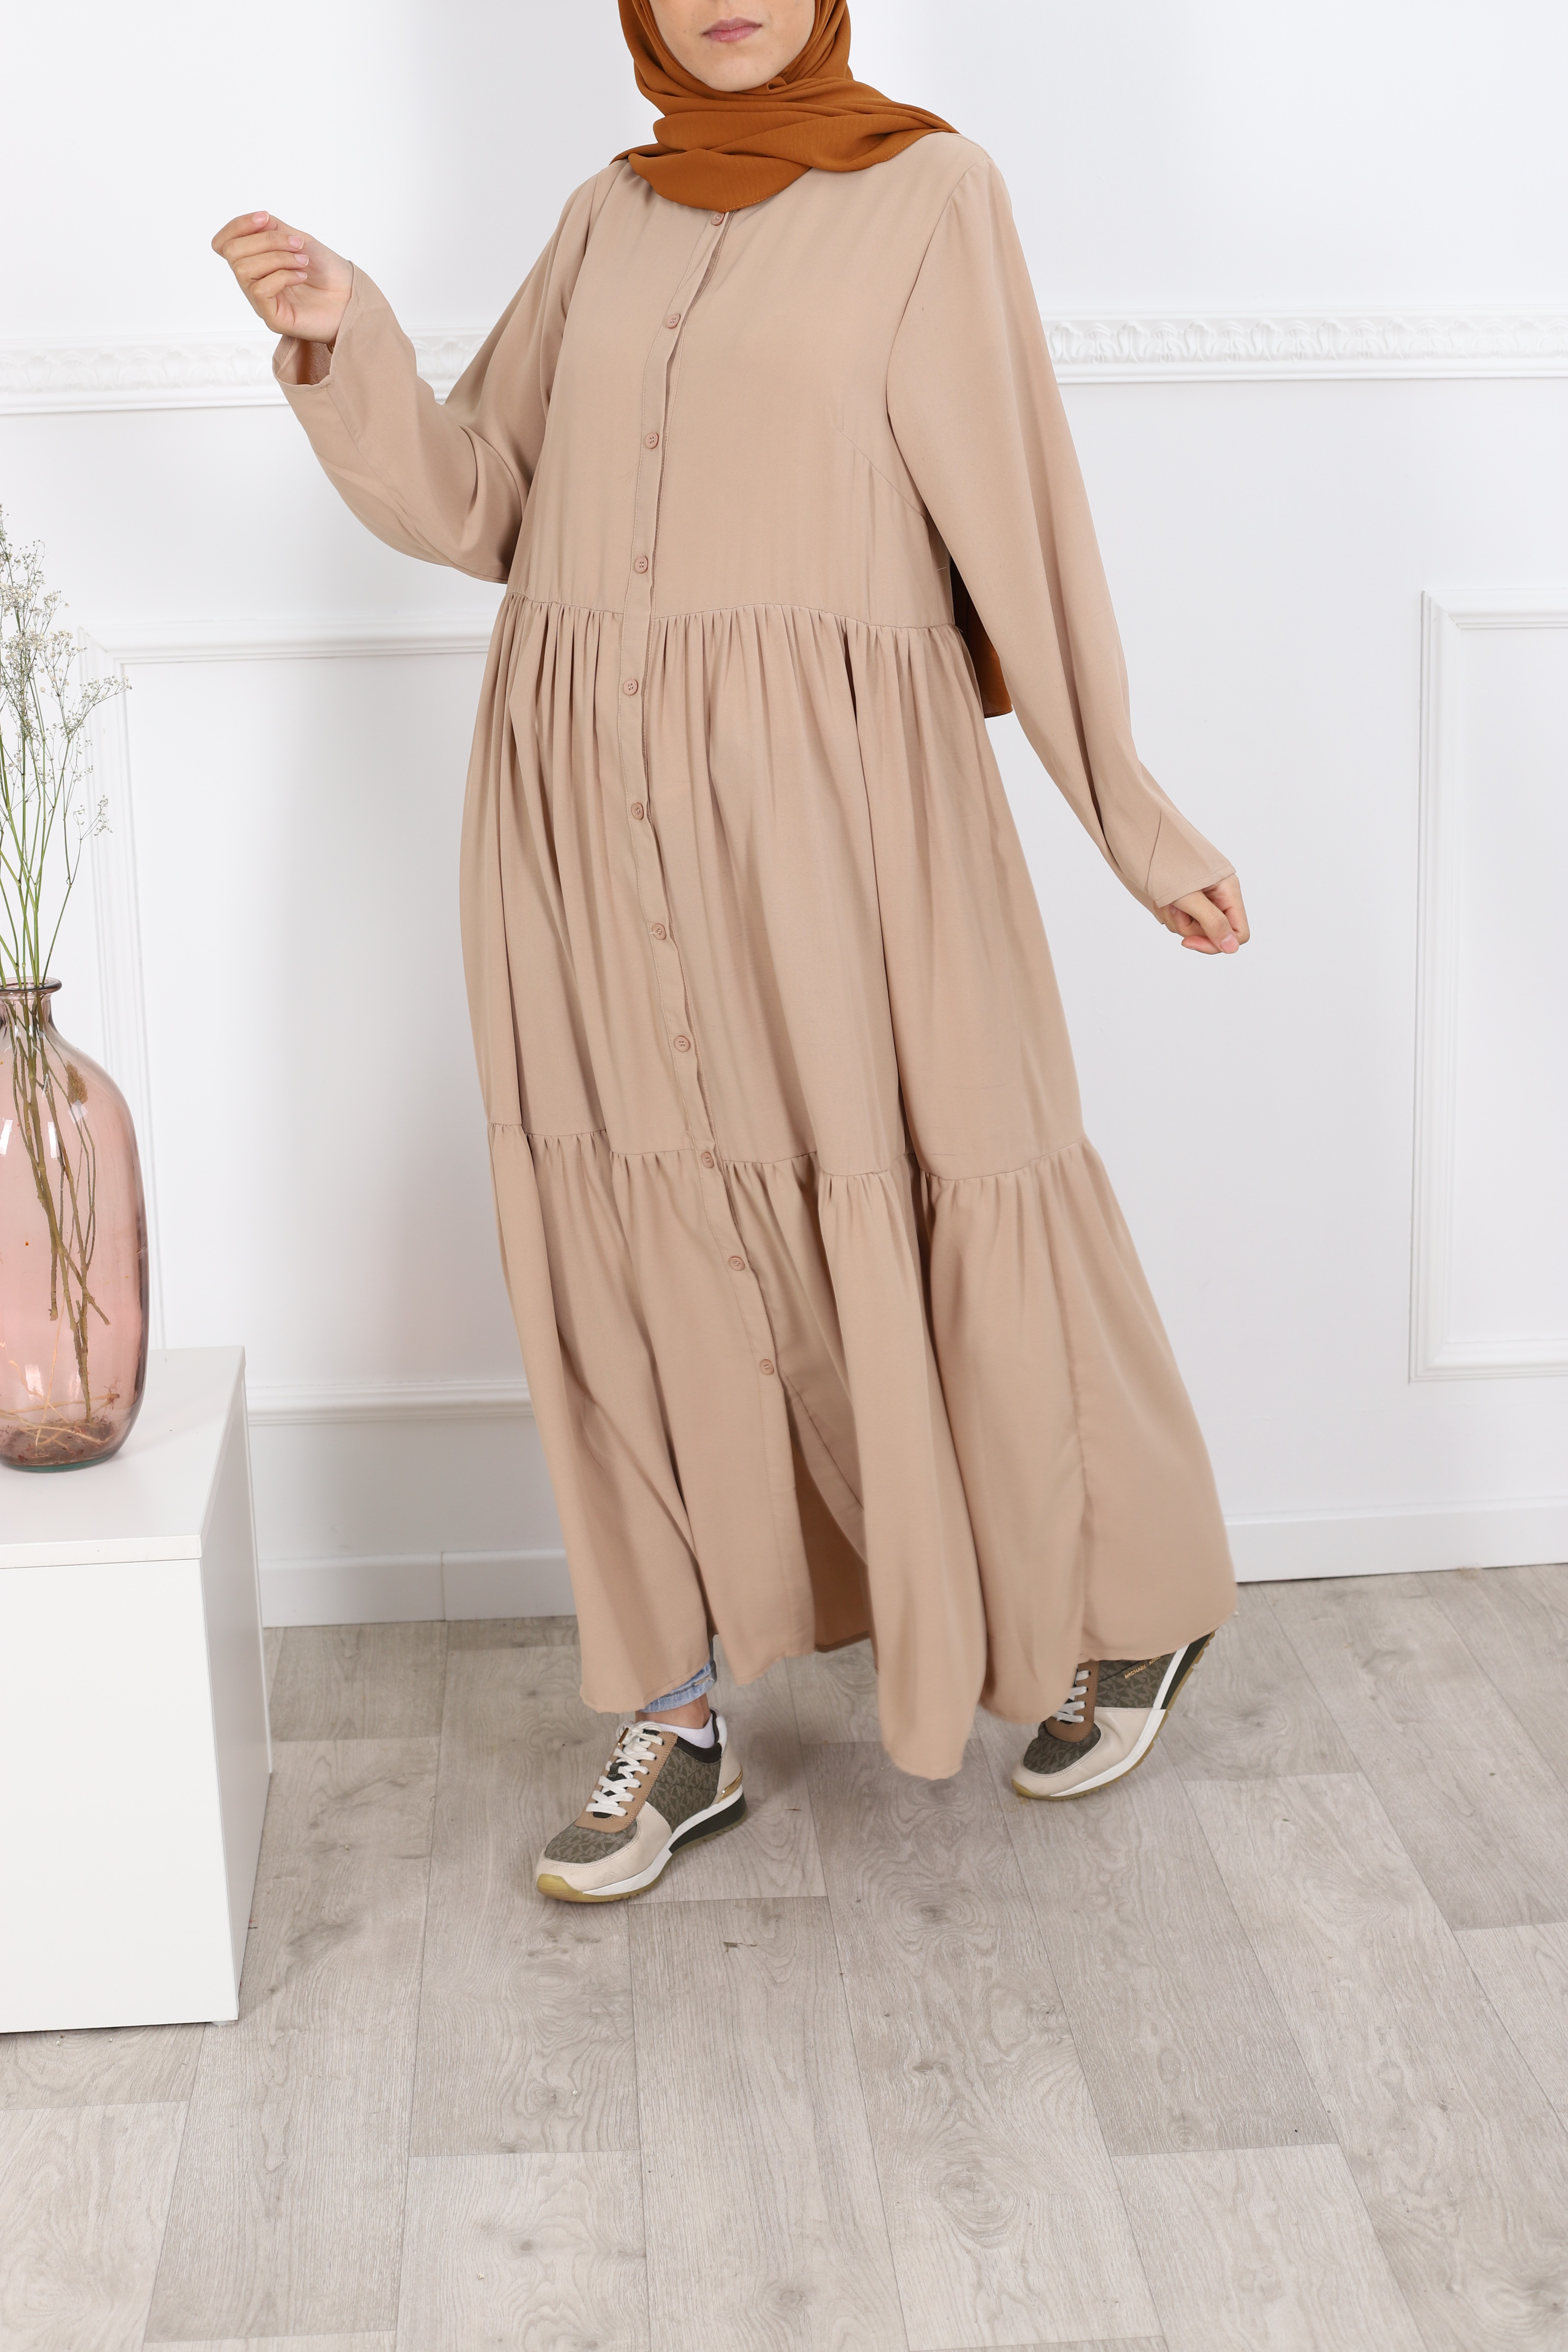 Robe boutons beige